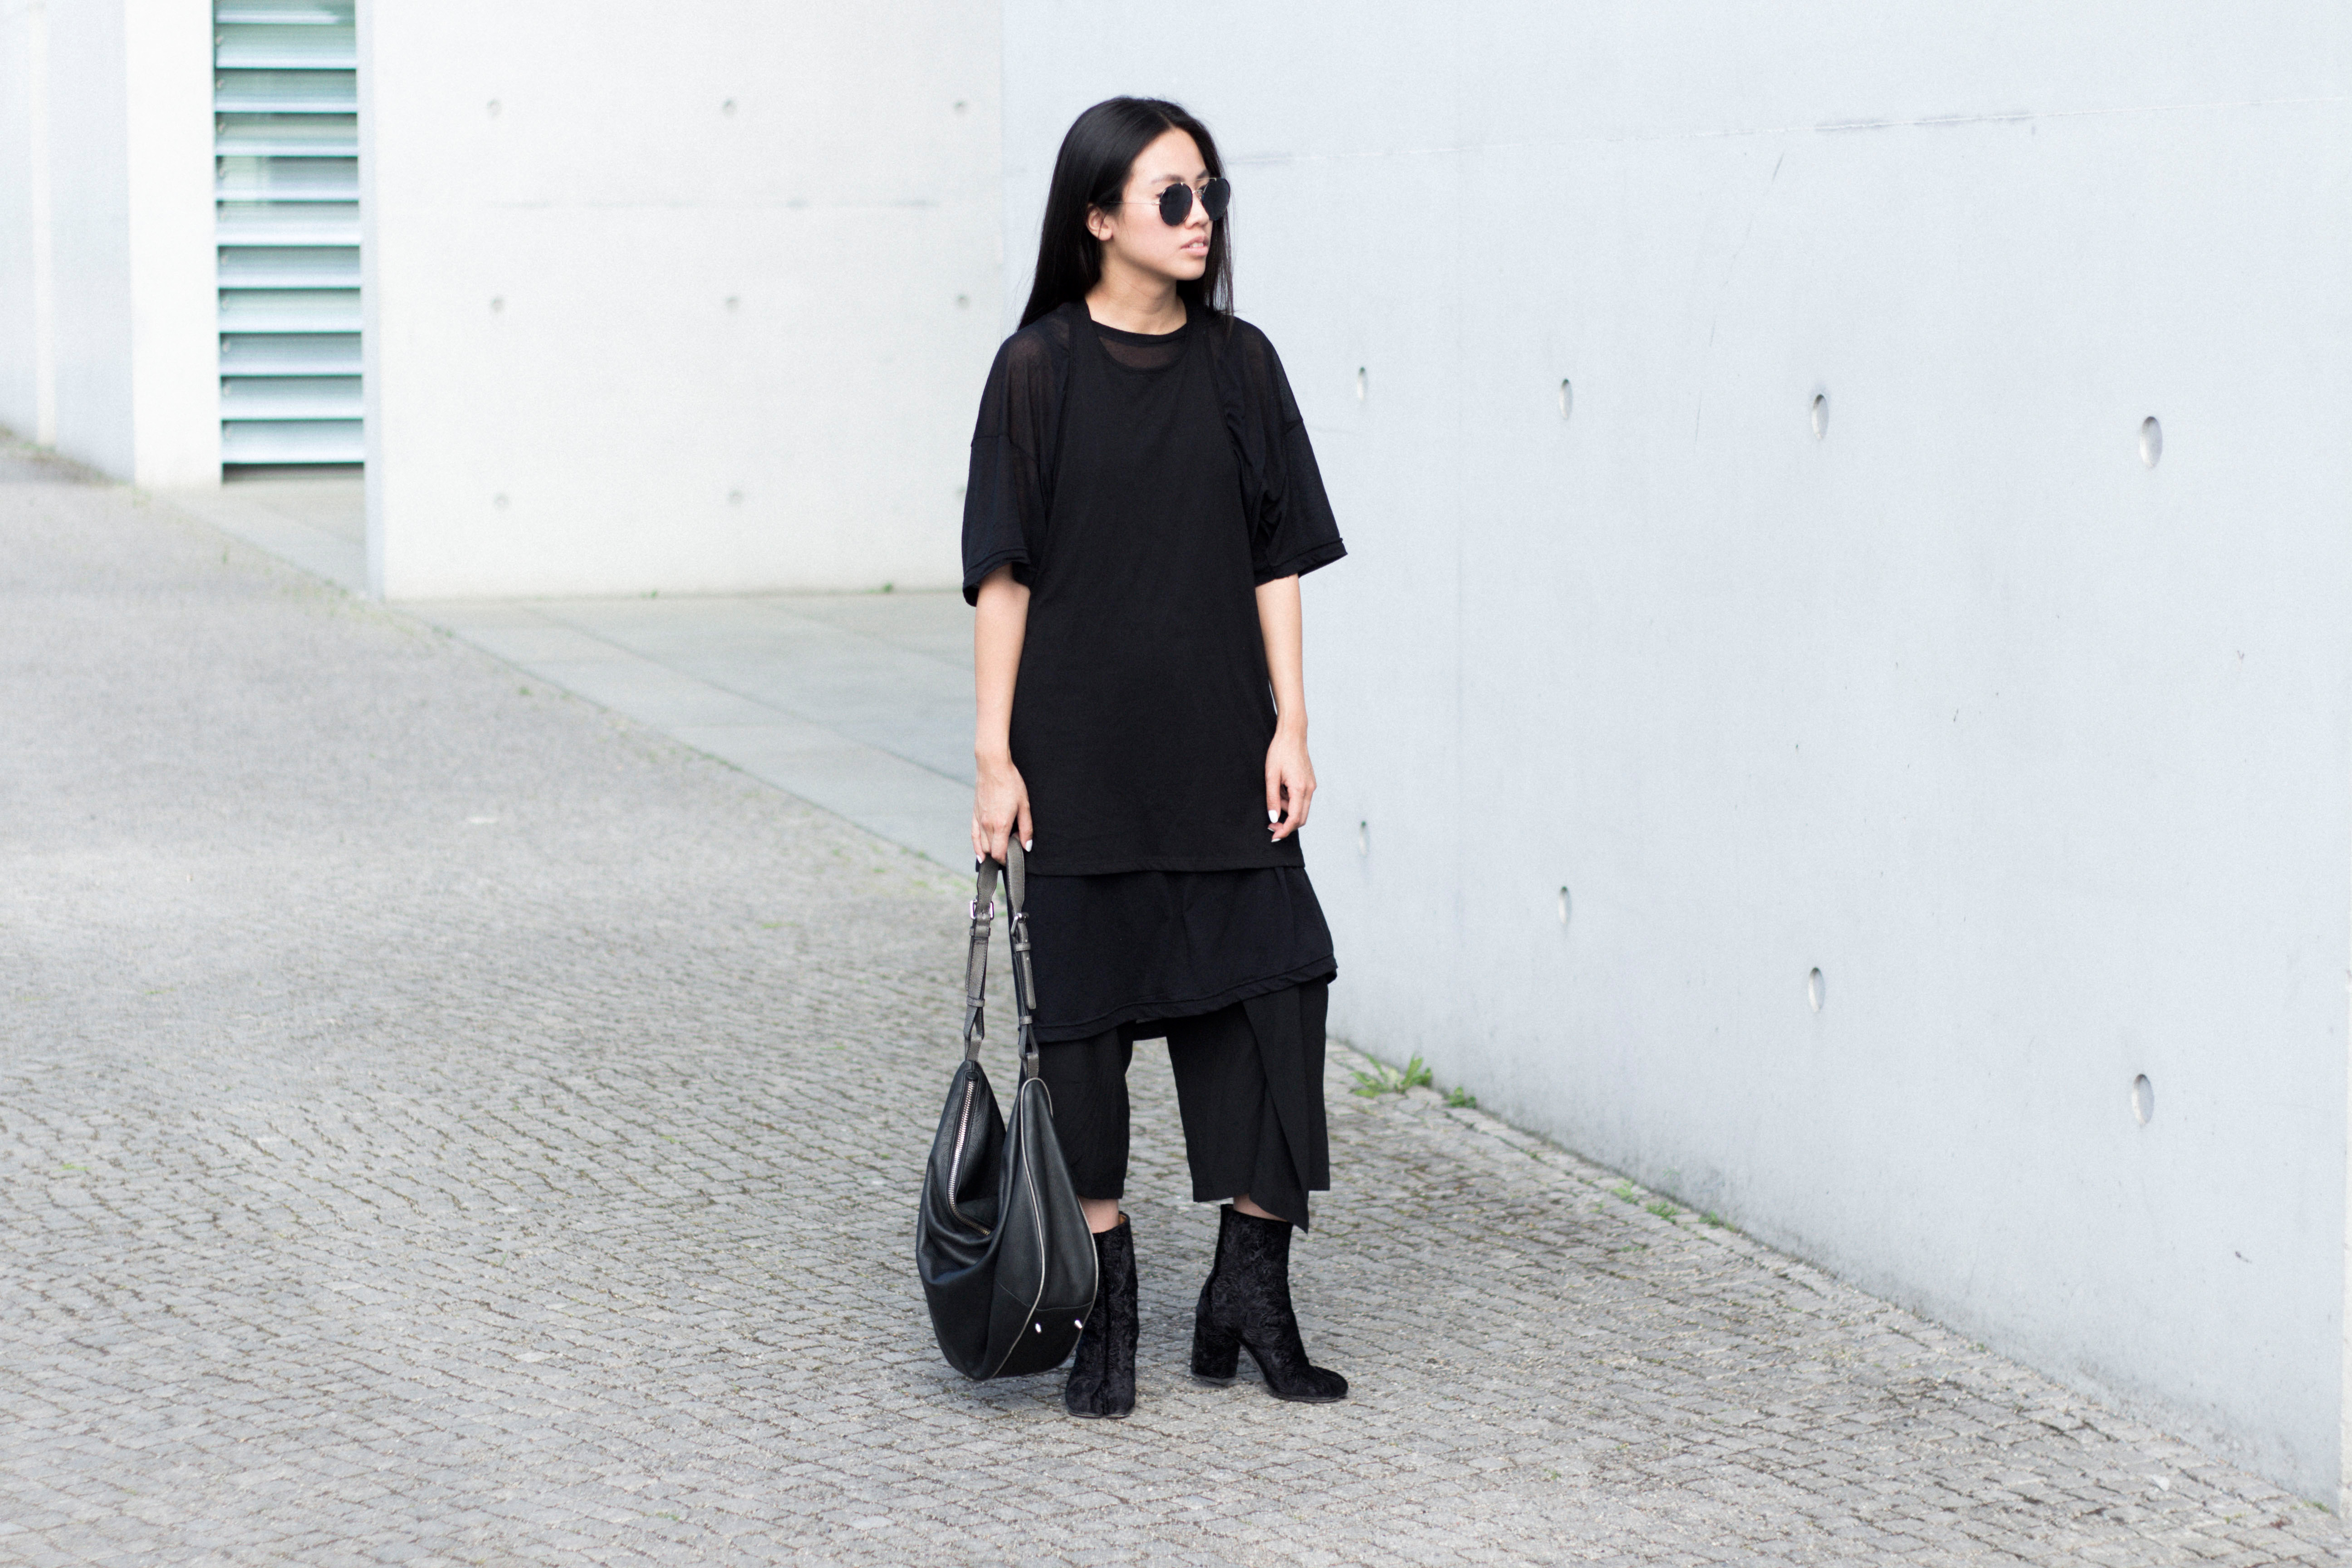 I heart Alice - Fashionblog from Germany: Alice M. Huynh wearing OAK NY, Issey Miyake, &OtherStories, Maison Martin Margiela & Prada